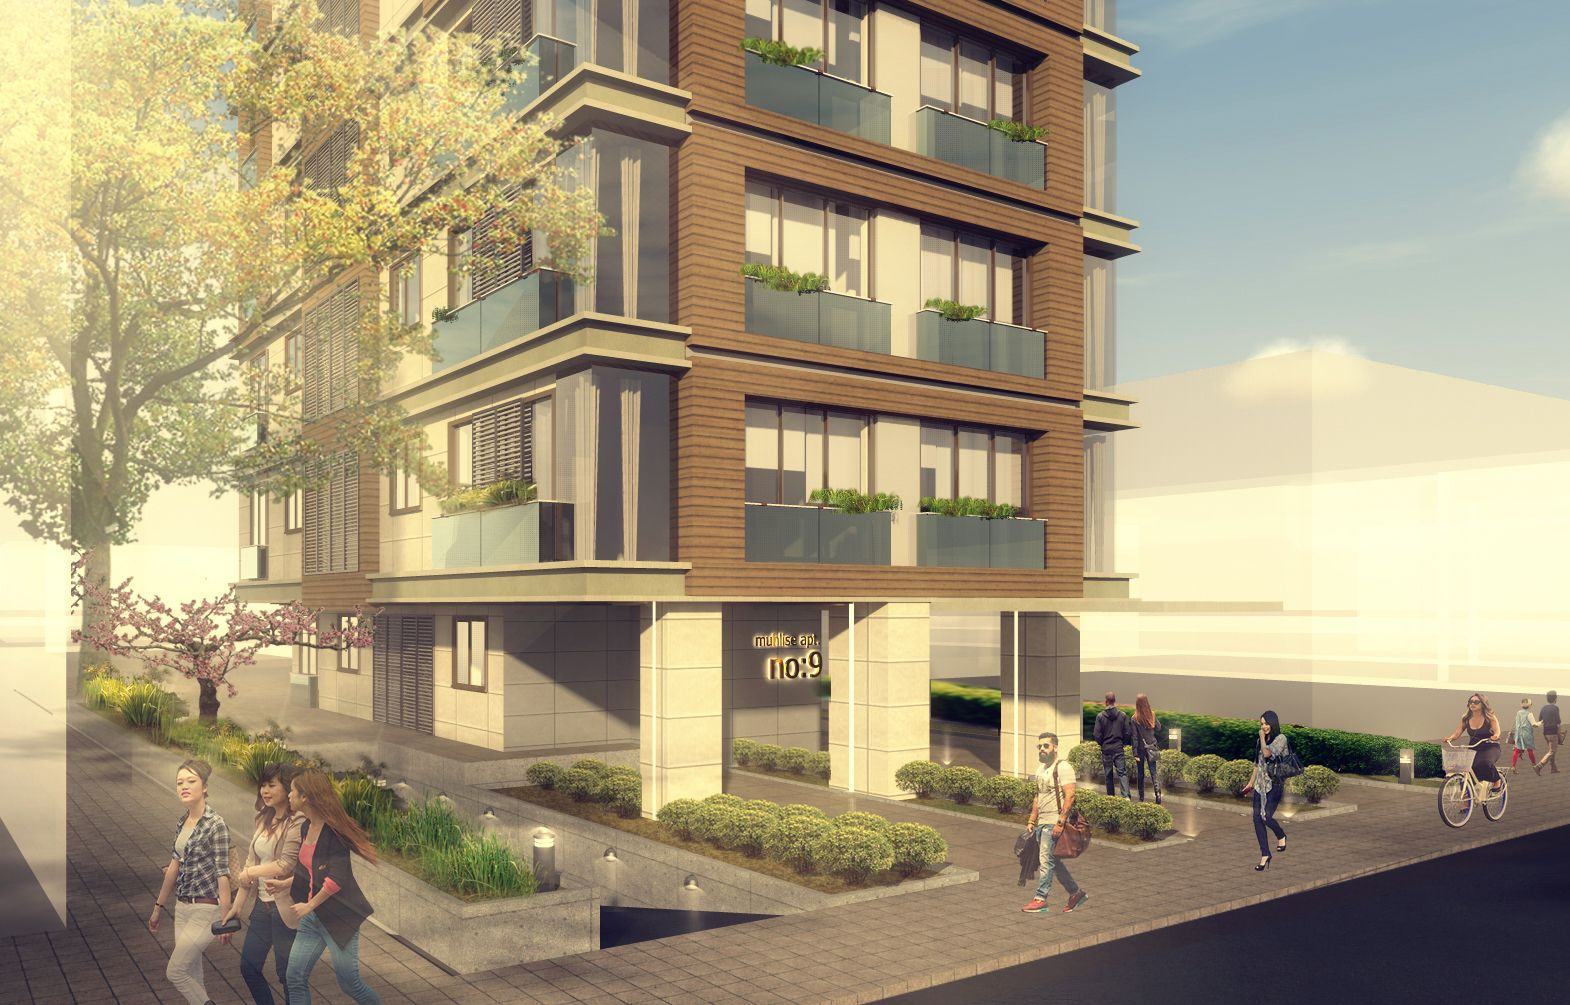 Apartment Building Port Architects designed by Pnar